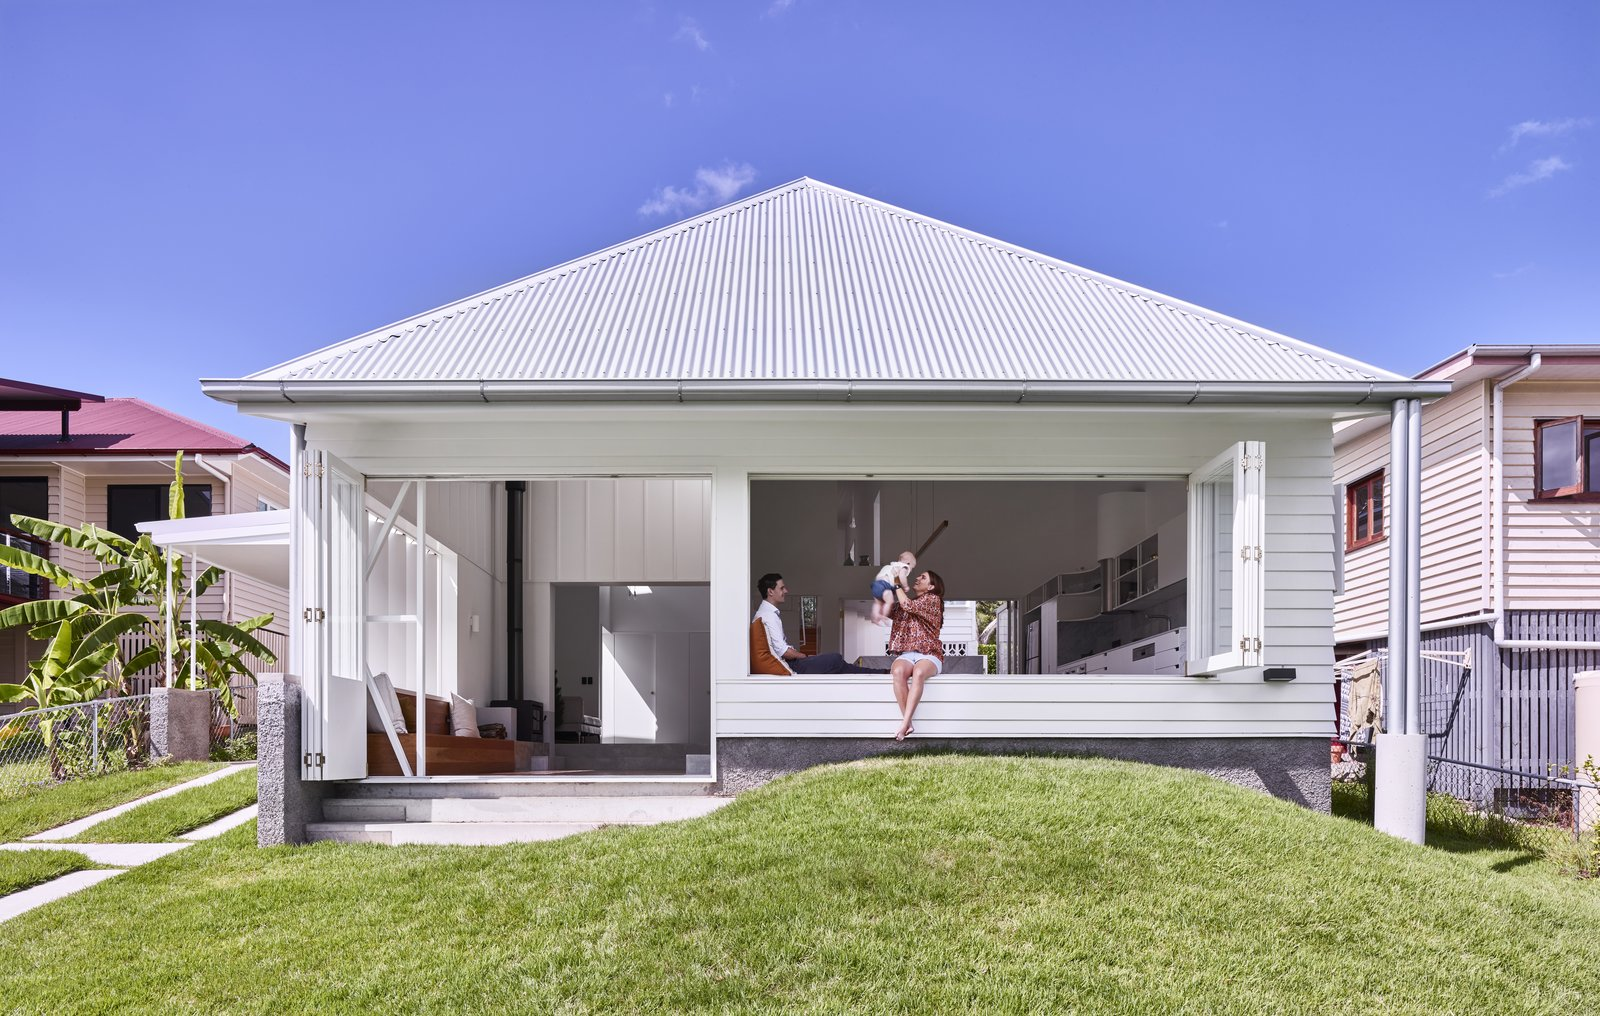 A Small Australian Cottage Becomes an Airy Gathering Hub